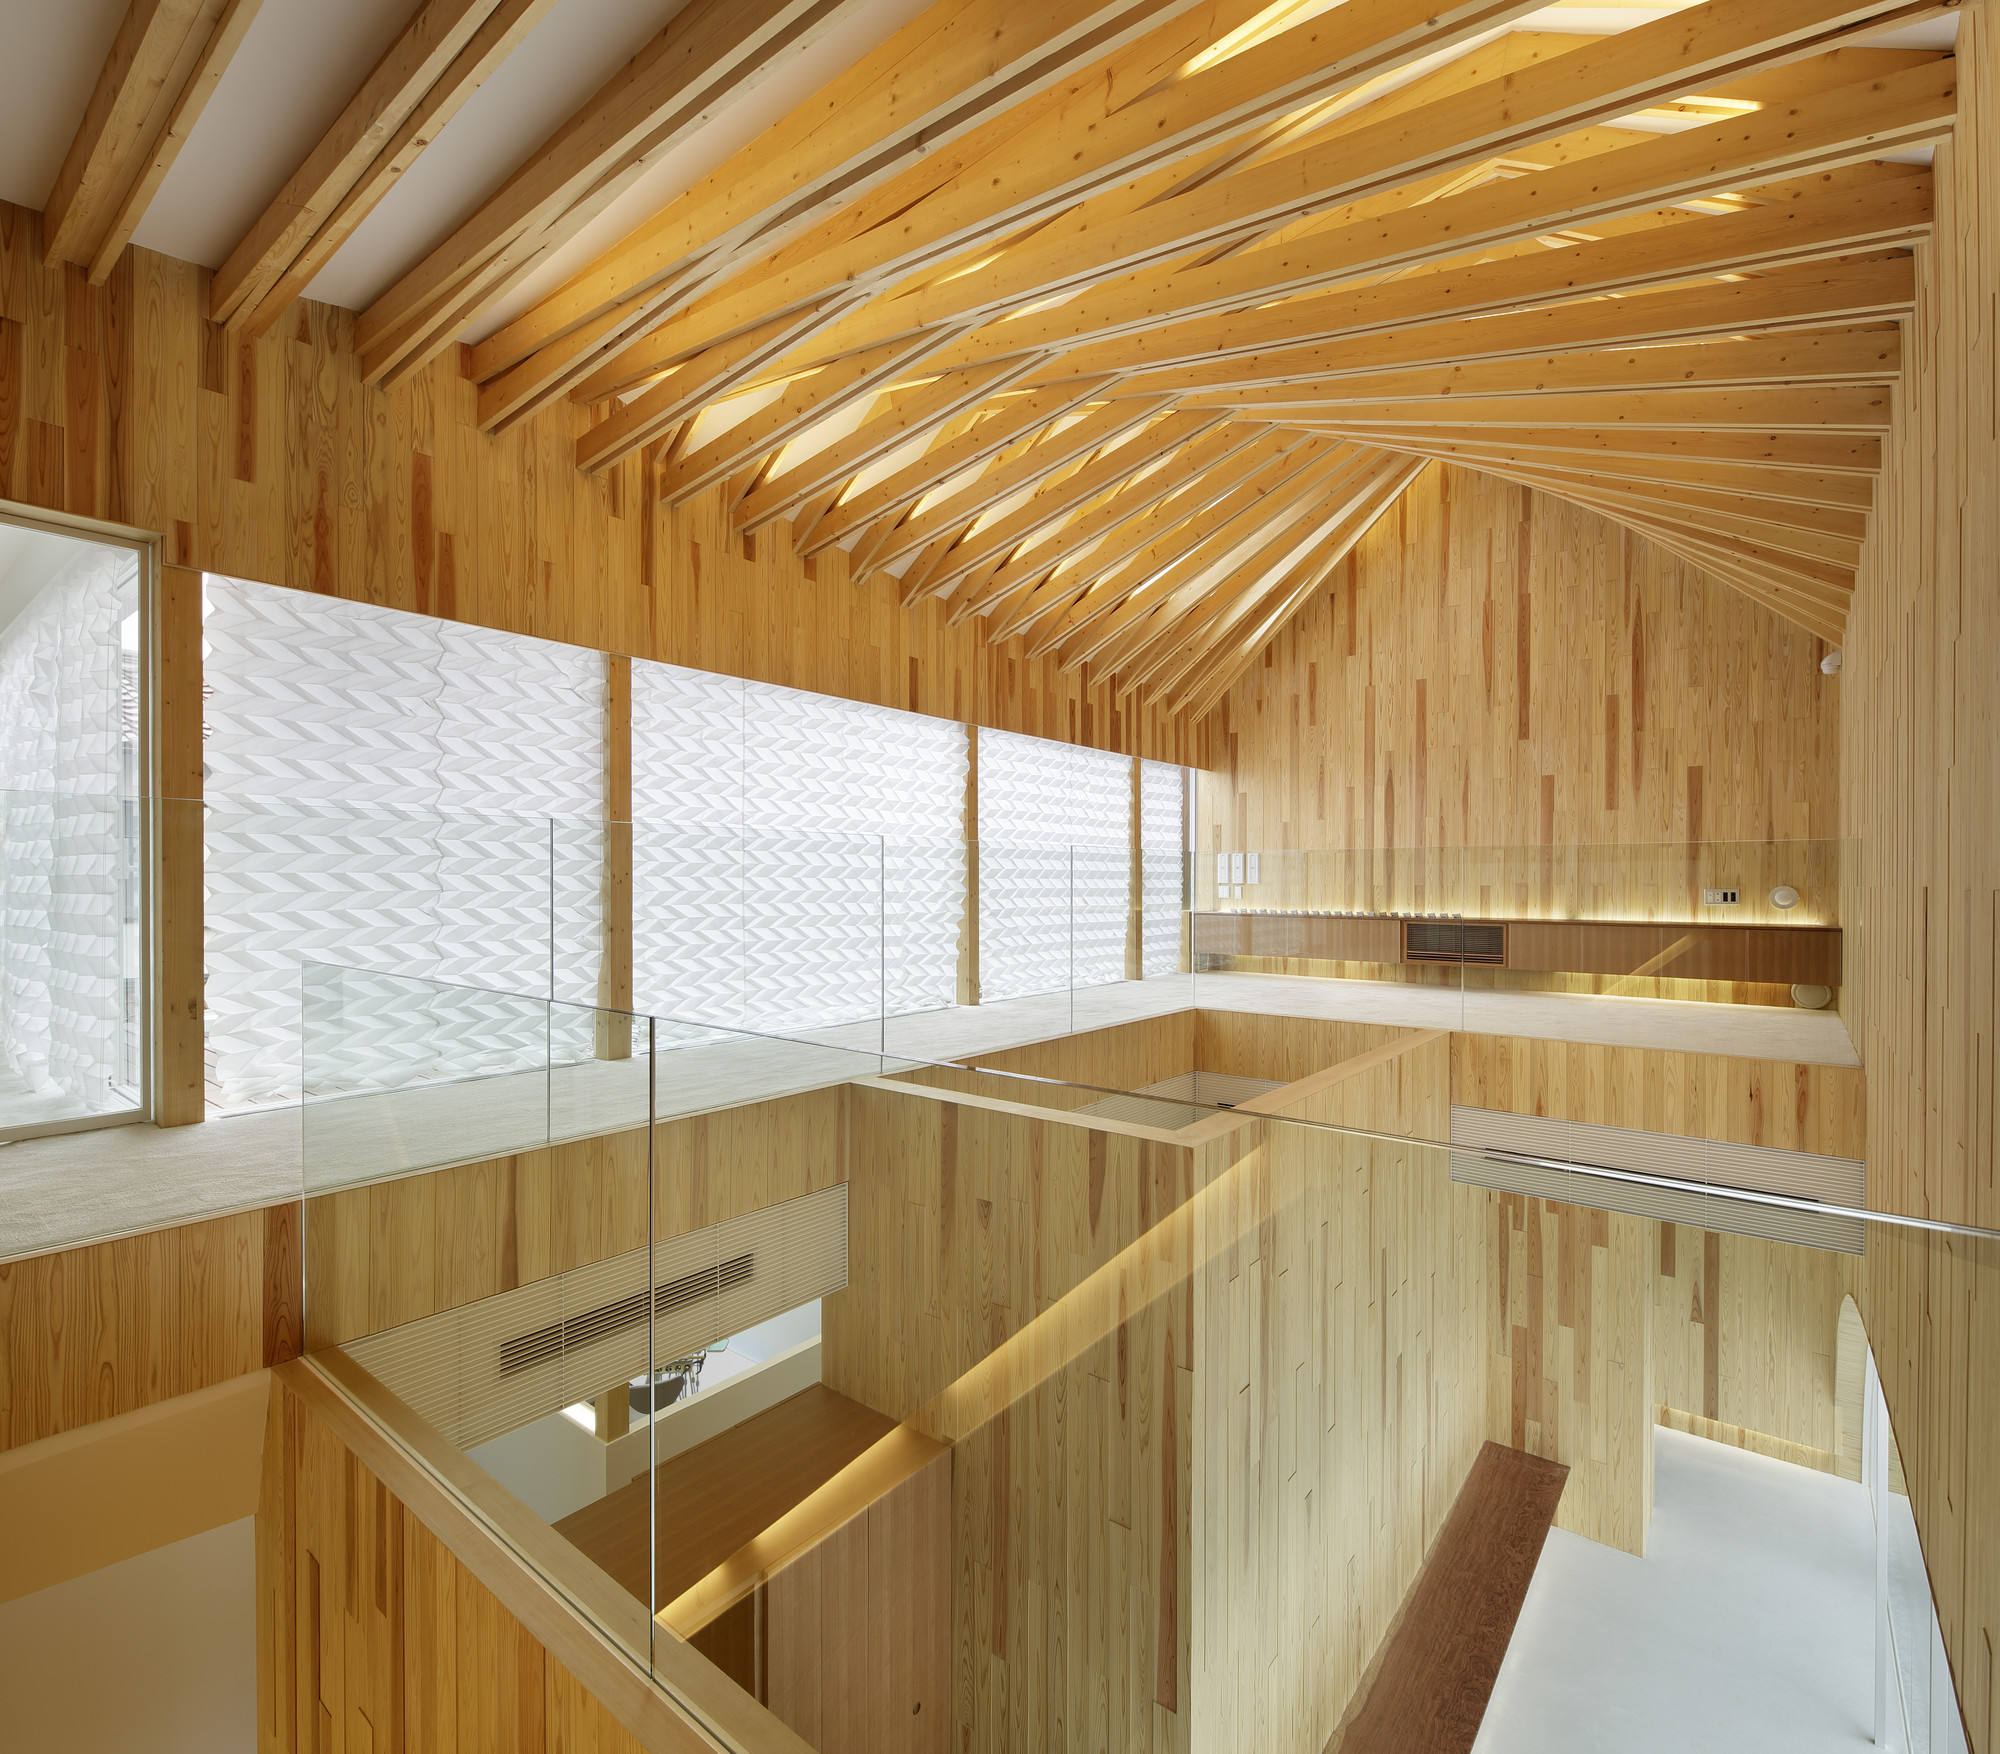 Timber Dentistry (Mino Osaka, Japan) / Kohki Hiranuma Architect & Associates. Image © Satoshi Shigeta